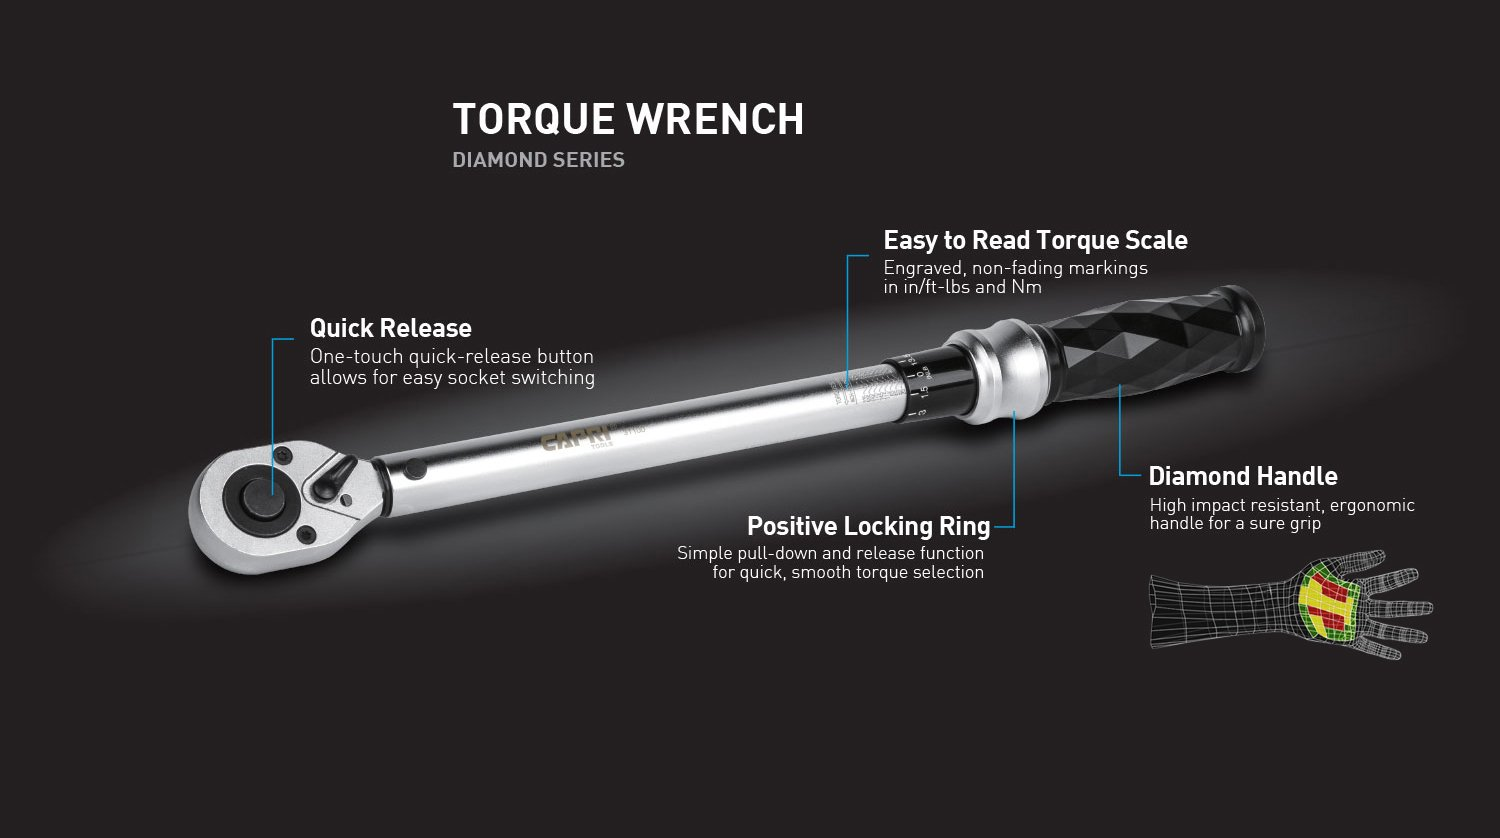 Capri Tools 3/8-in. Dr. Torque Wrench, 10-80 ft-lbs, Diamond Contour Ergonomic Grip by Capri Tools (Image #2)